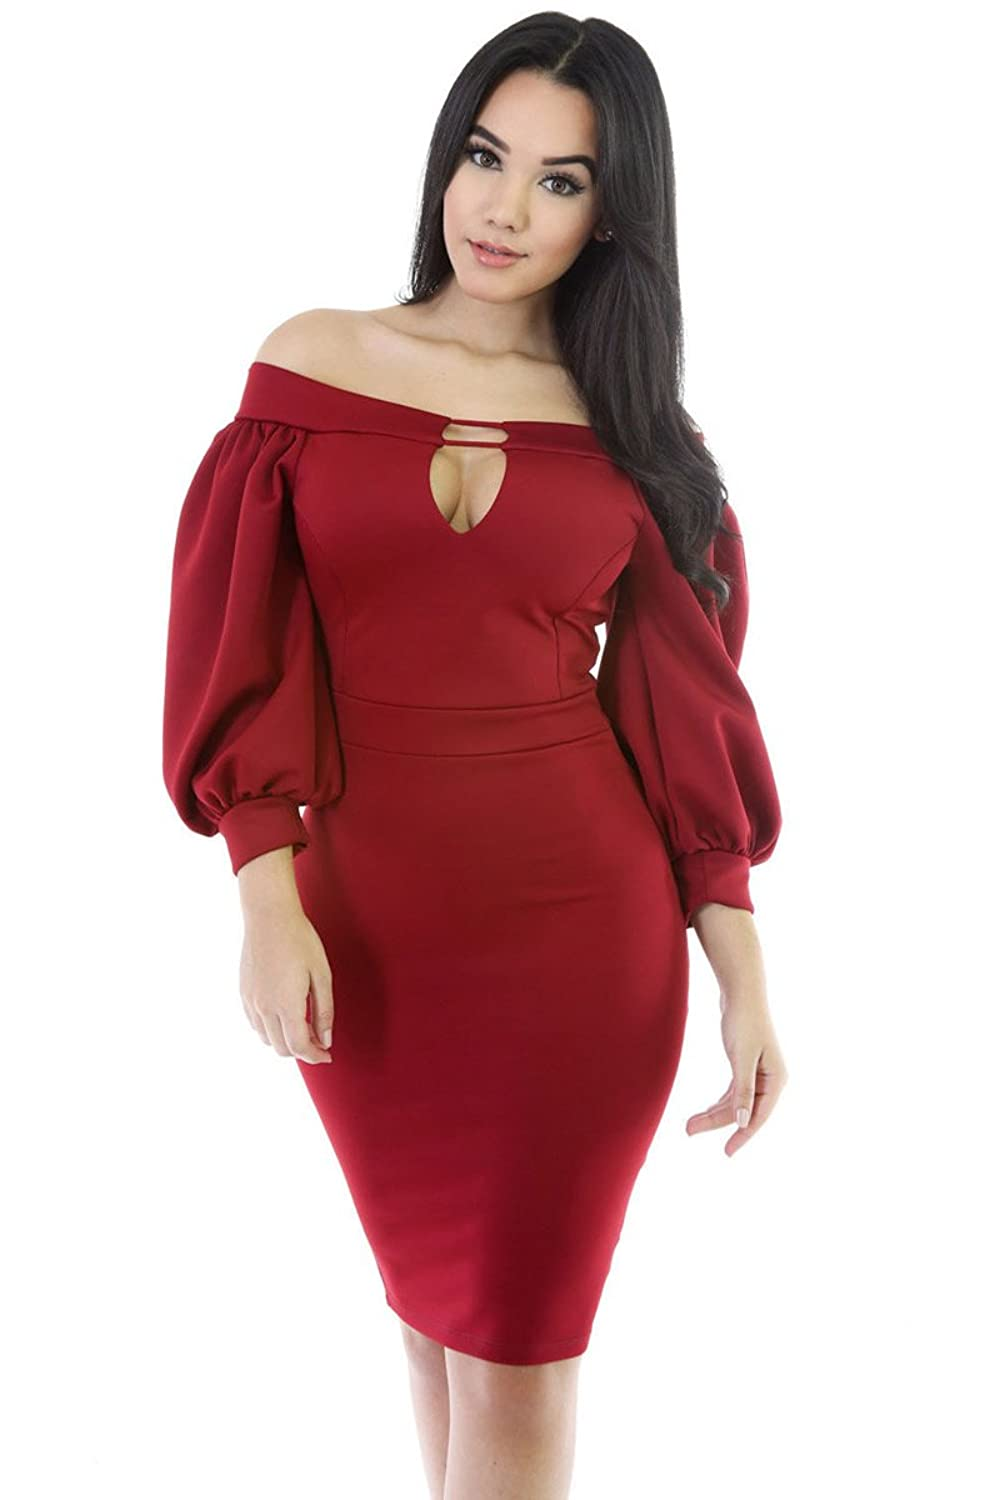 BENNINGCO Women's Puffs Peep Hole Off Shoulder Midi Bodycon Dress